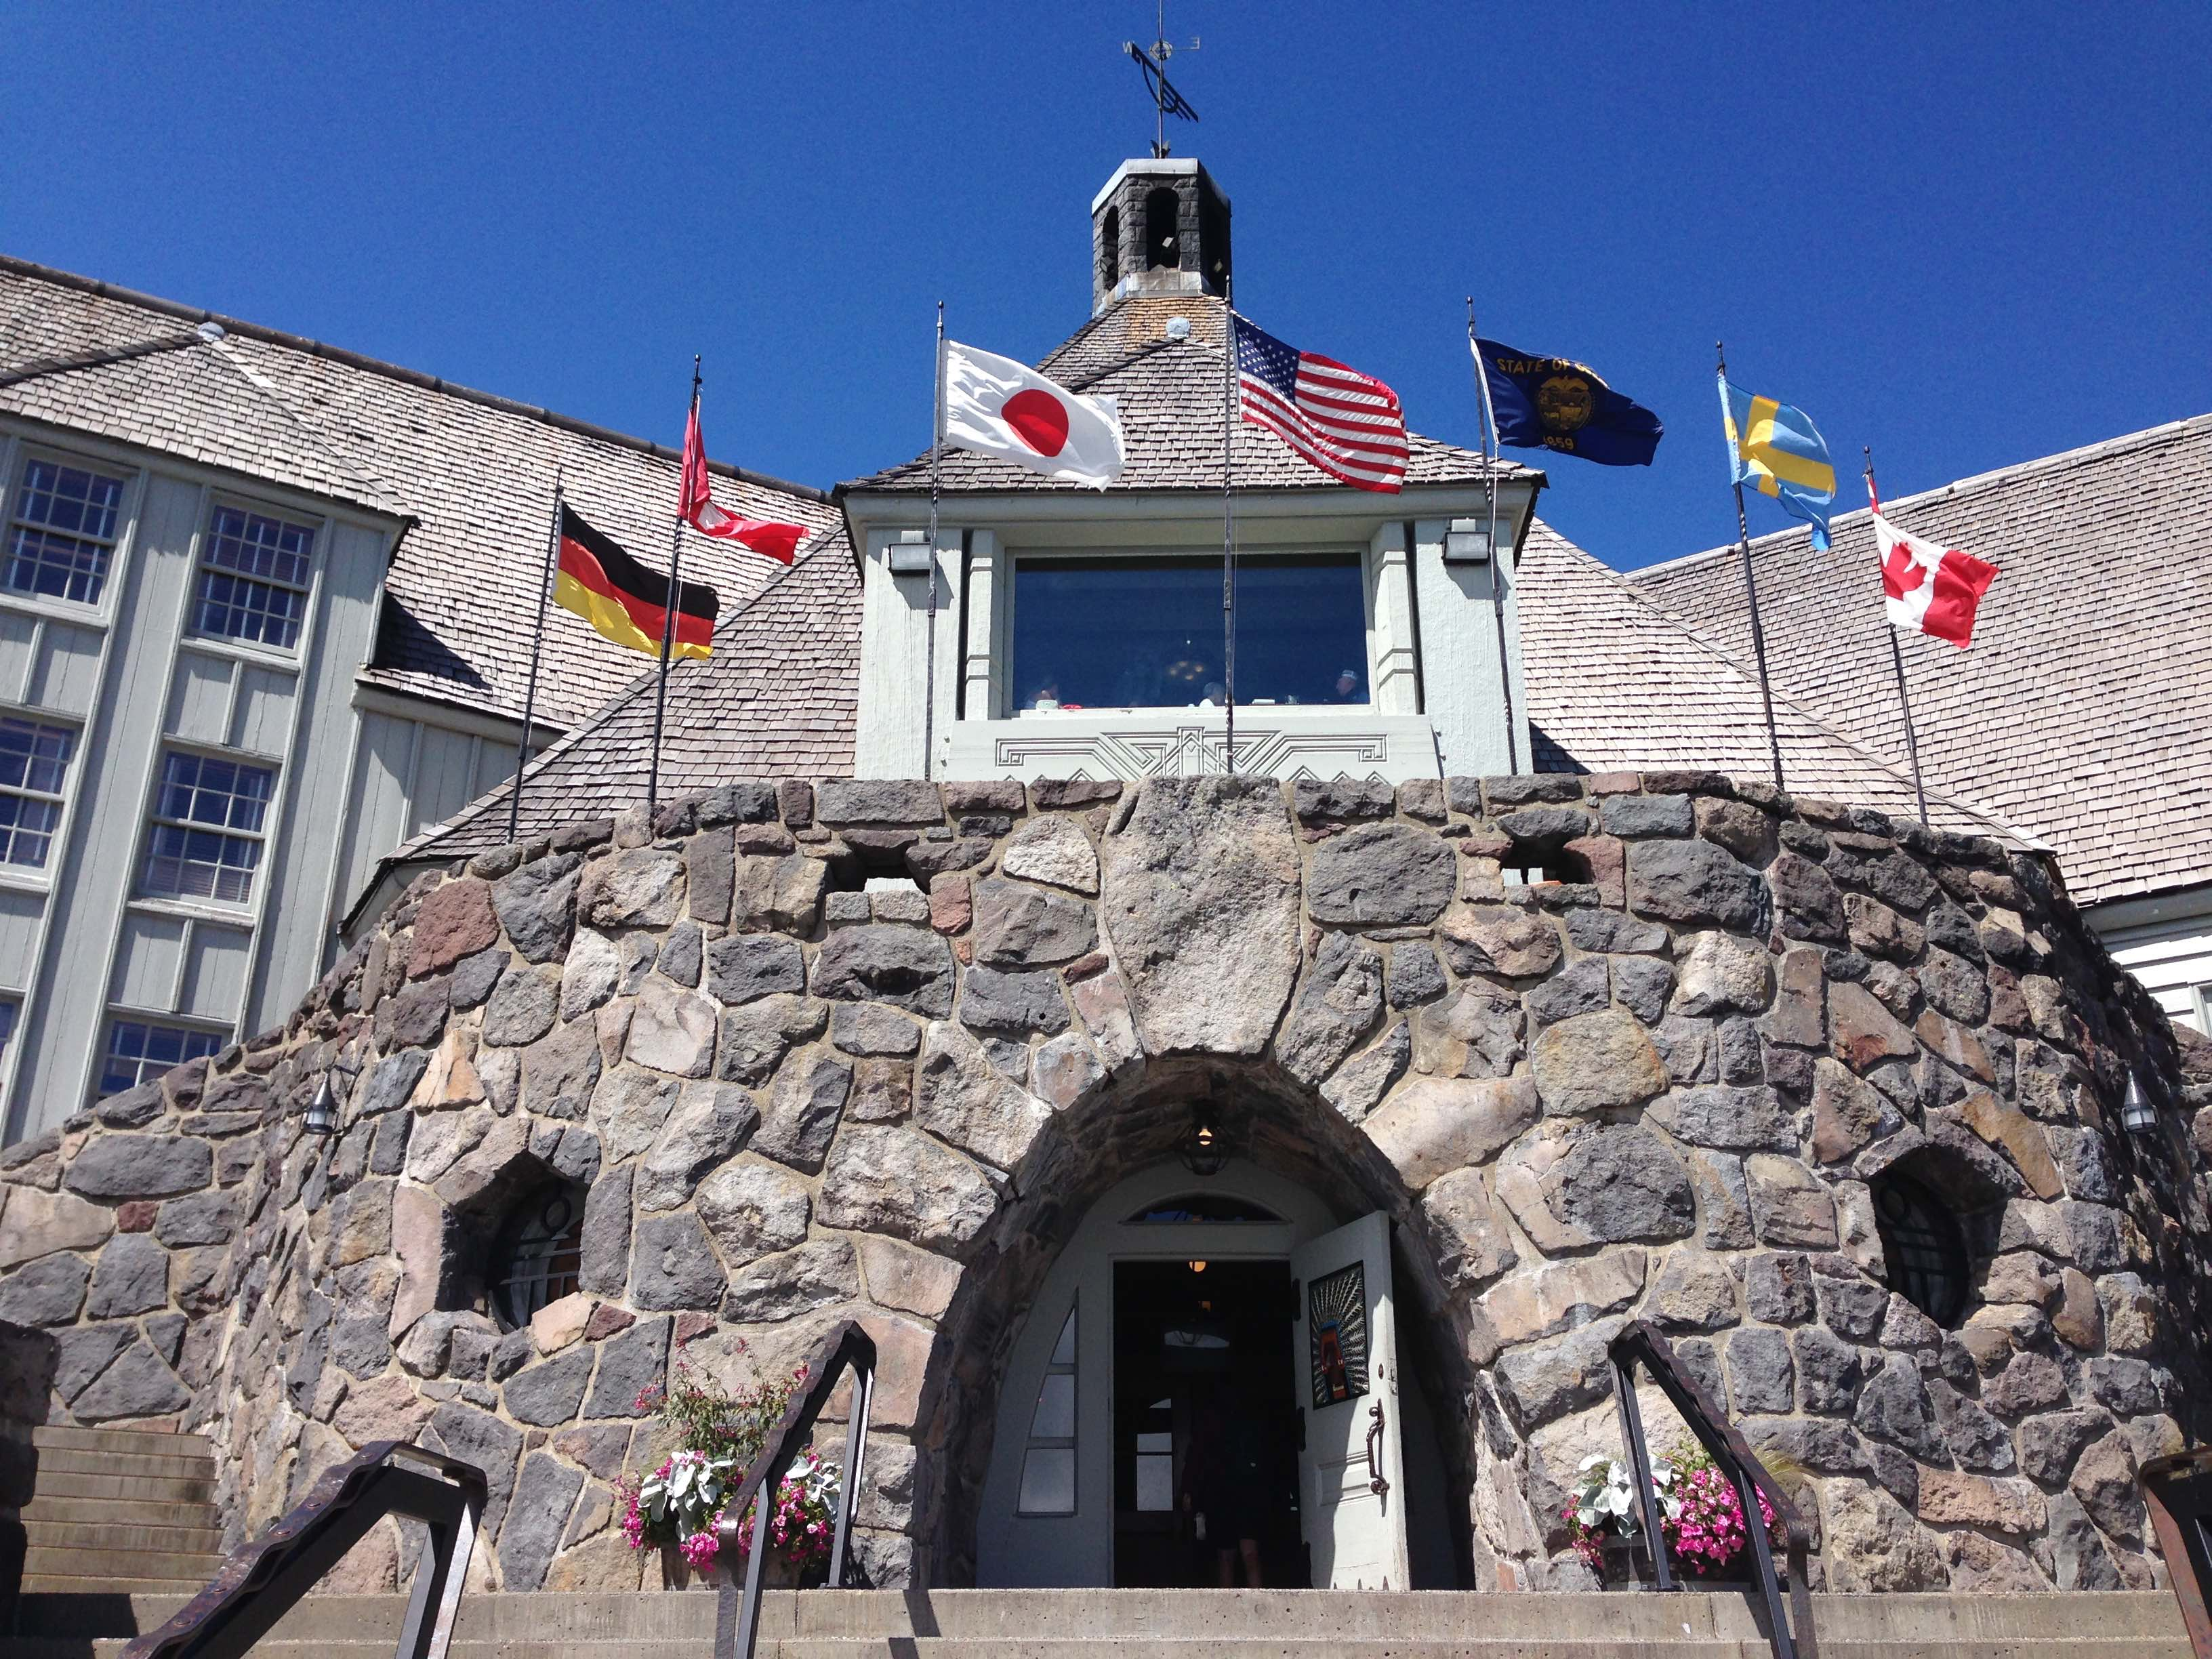 Timberline Lodge - photo by Julie Dodd